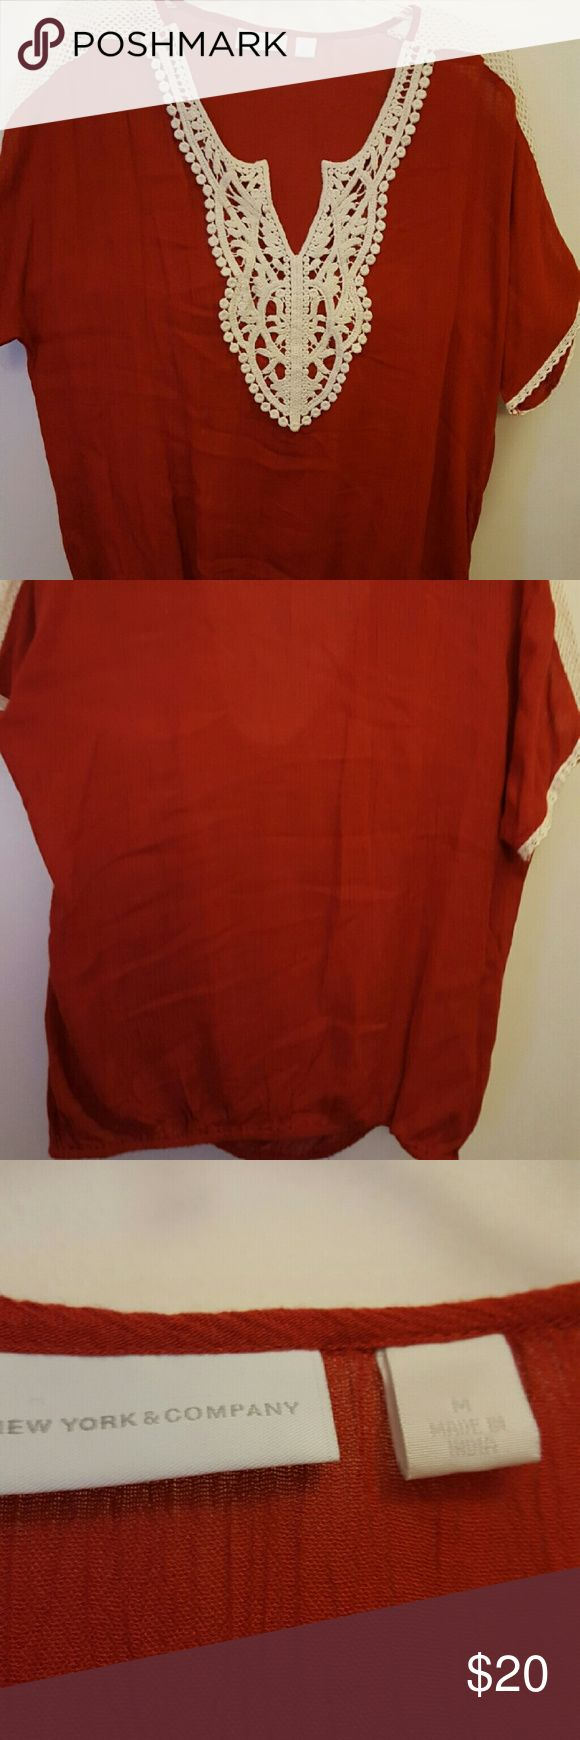 New York & Co red shirt Short sleeve Red with beige lace never worn New York & Company Tops Tees - Short Sleeve